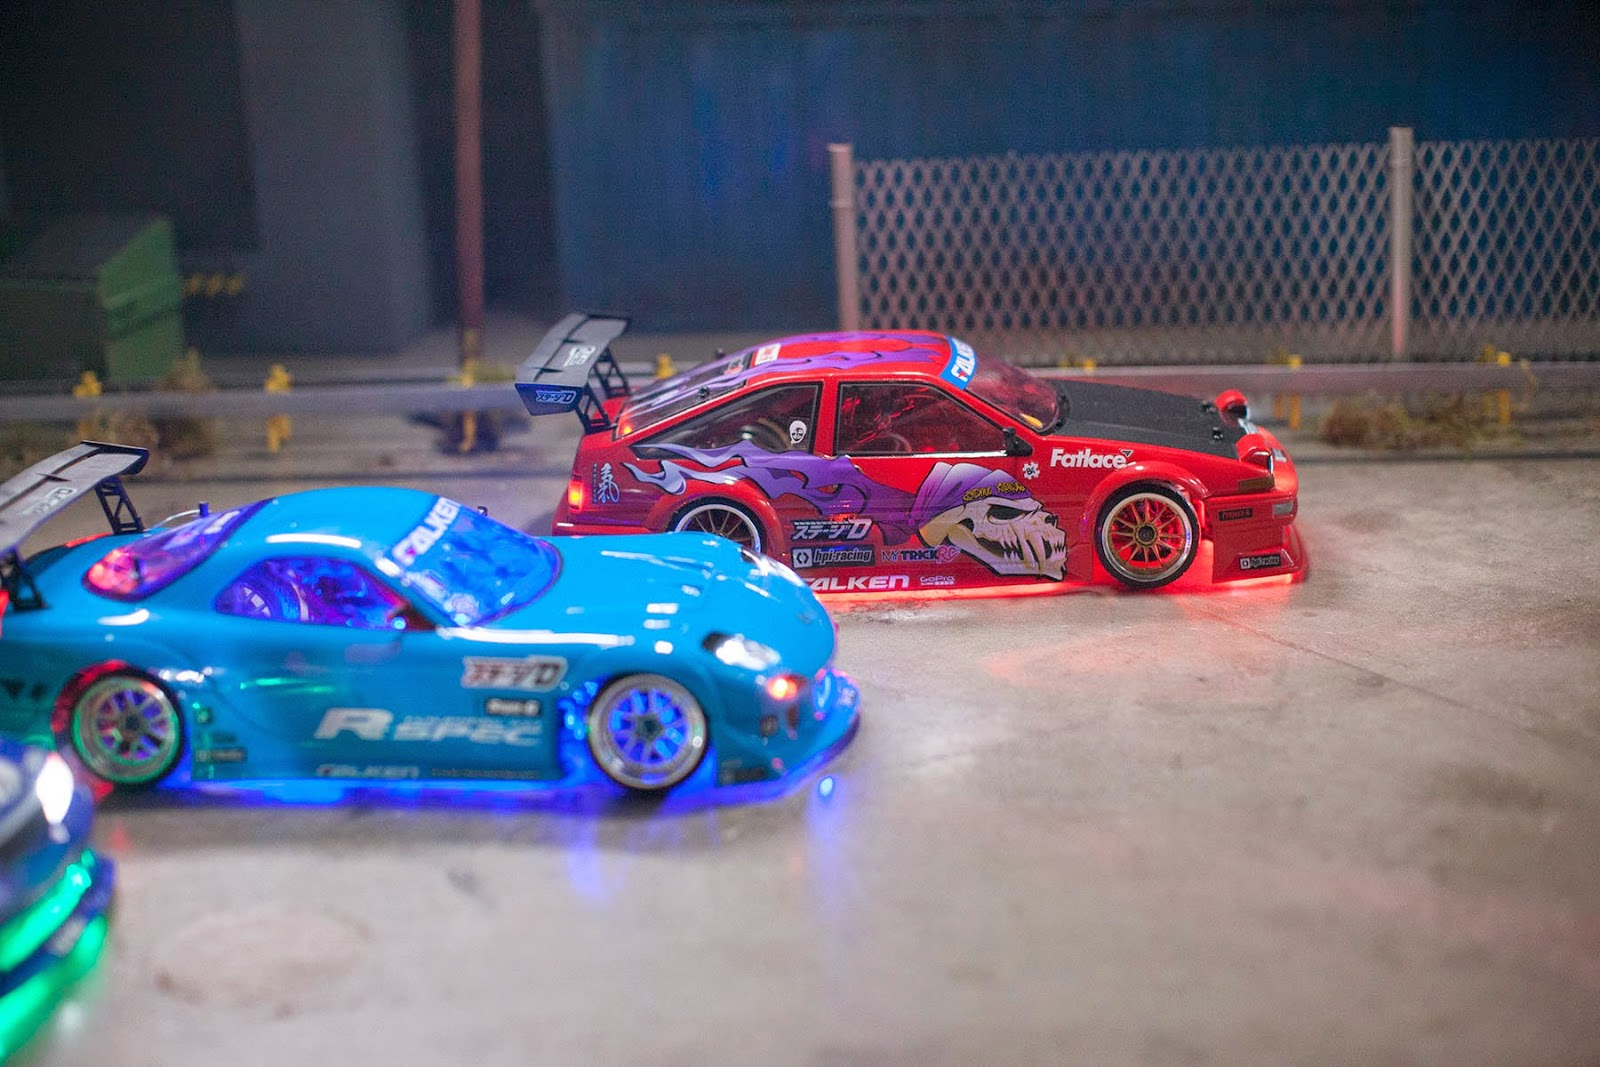 Falken Tire's RC Drift cars!